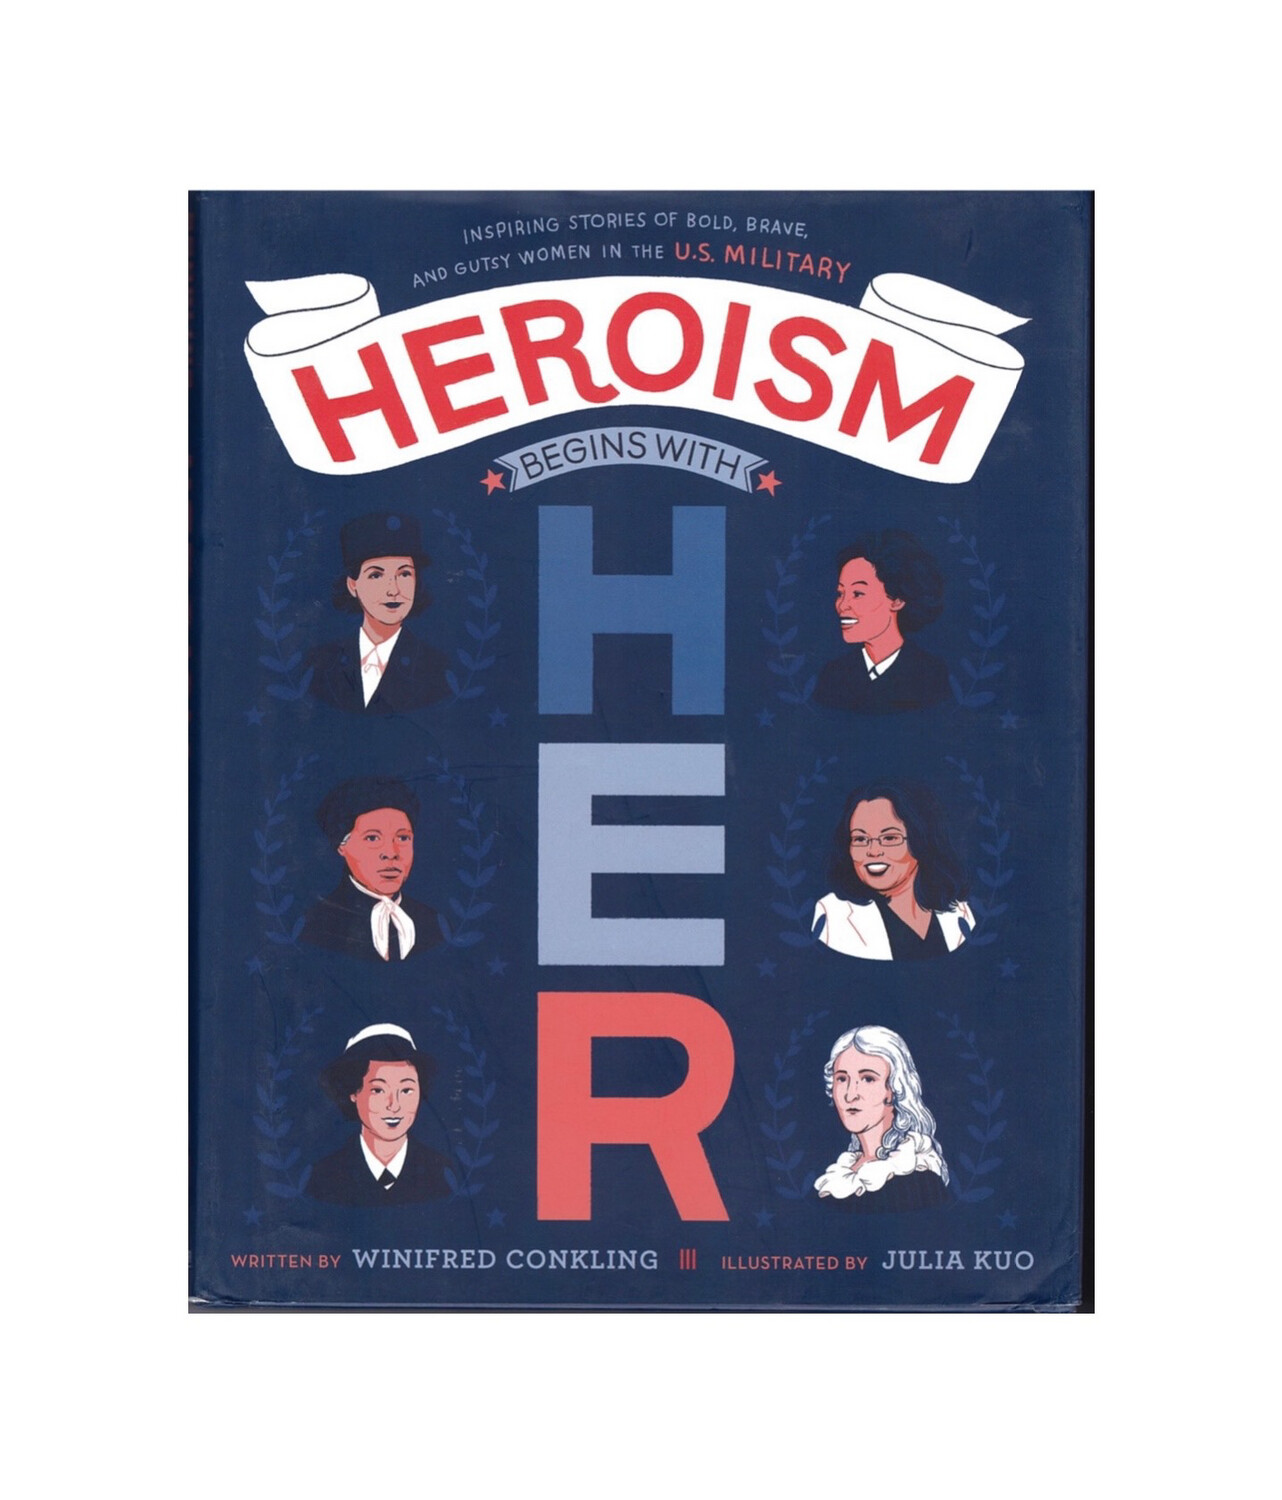 Heroism begins with Her By Winifred Conkling